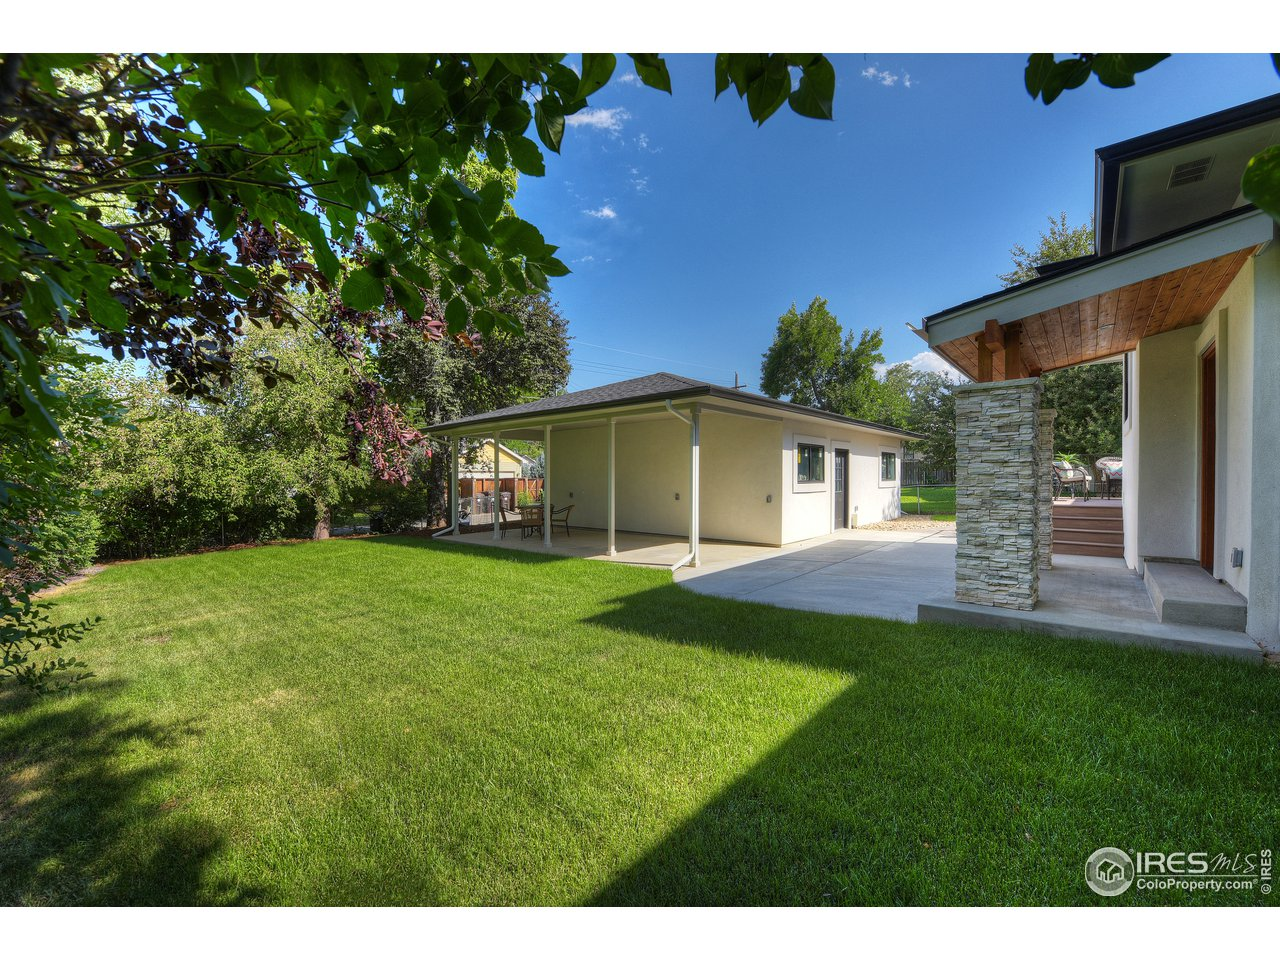 Large lot with mature landscaping